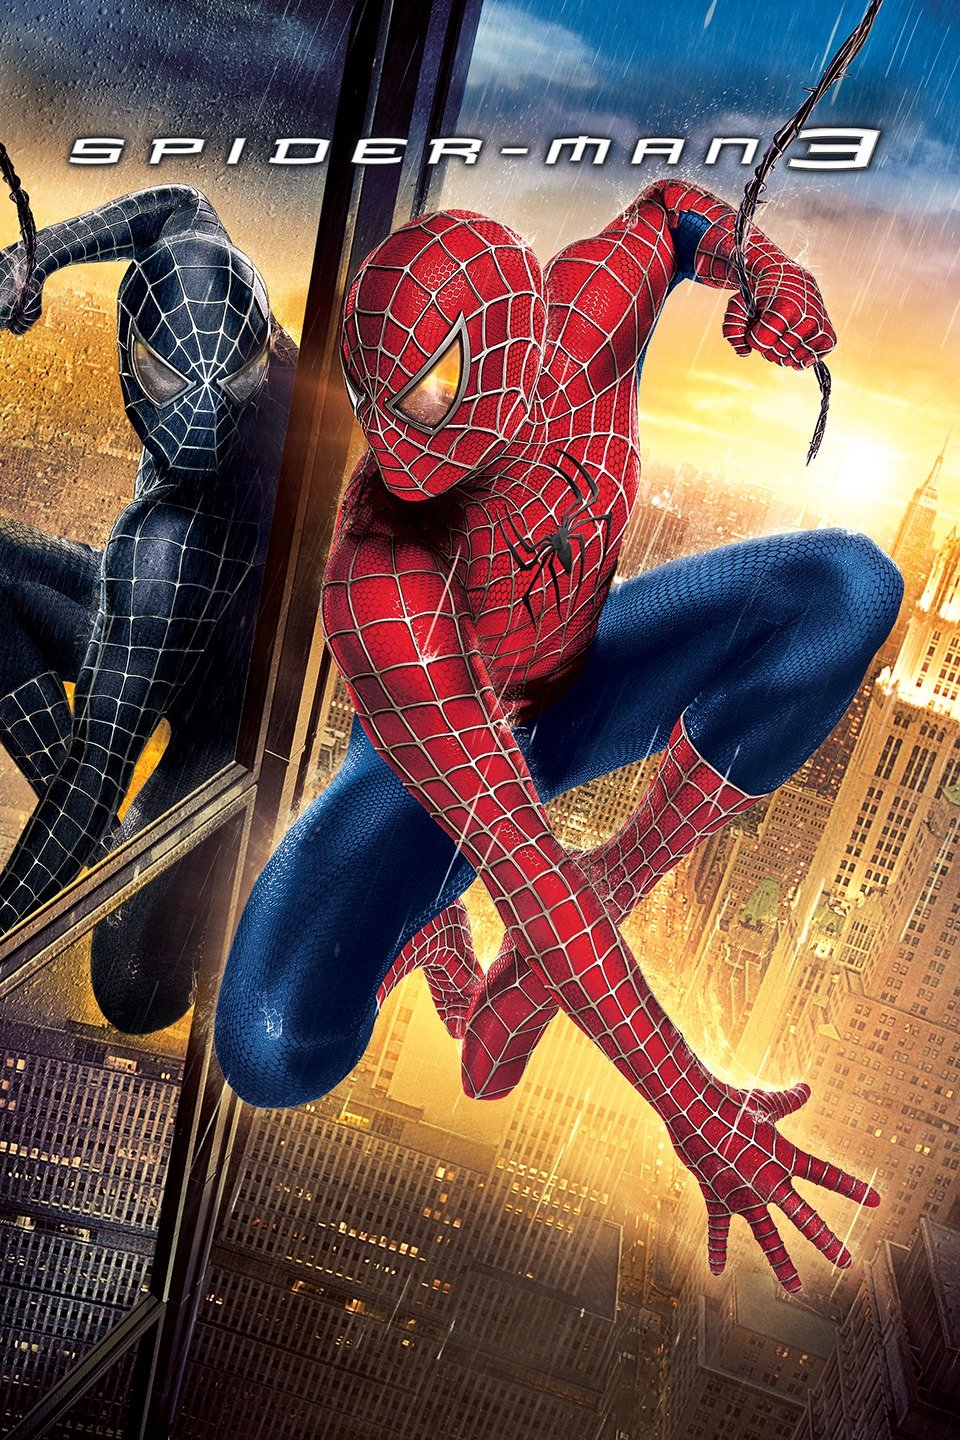 watch spider-man 3 online with lightbox from $4.99